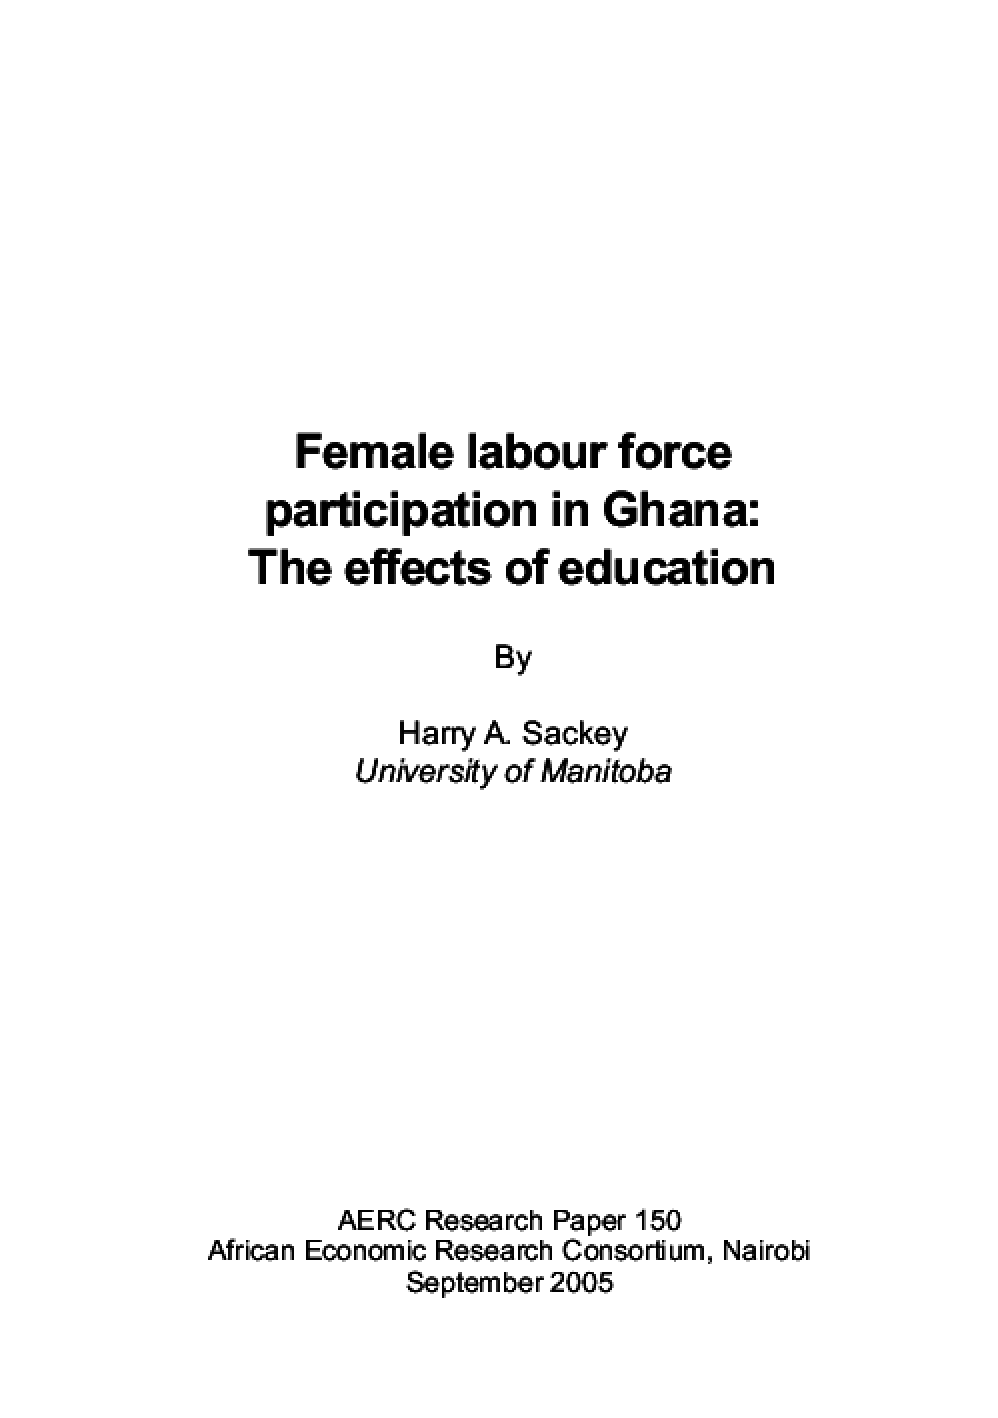 Female Labour Force Participation in Ghana: The Effects of Education